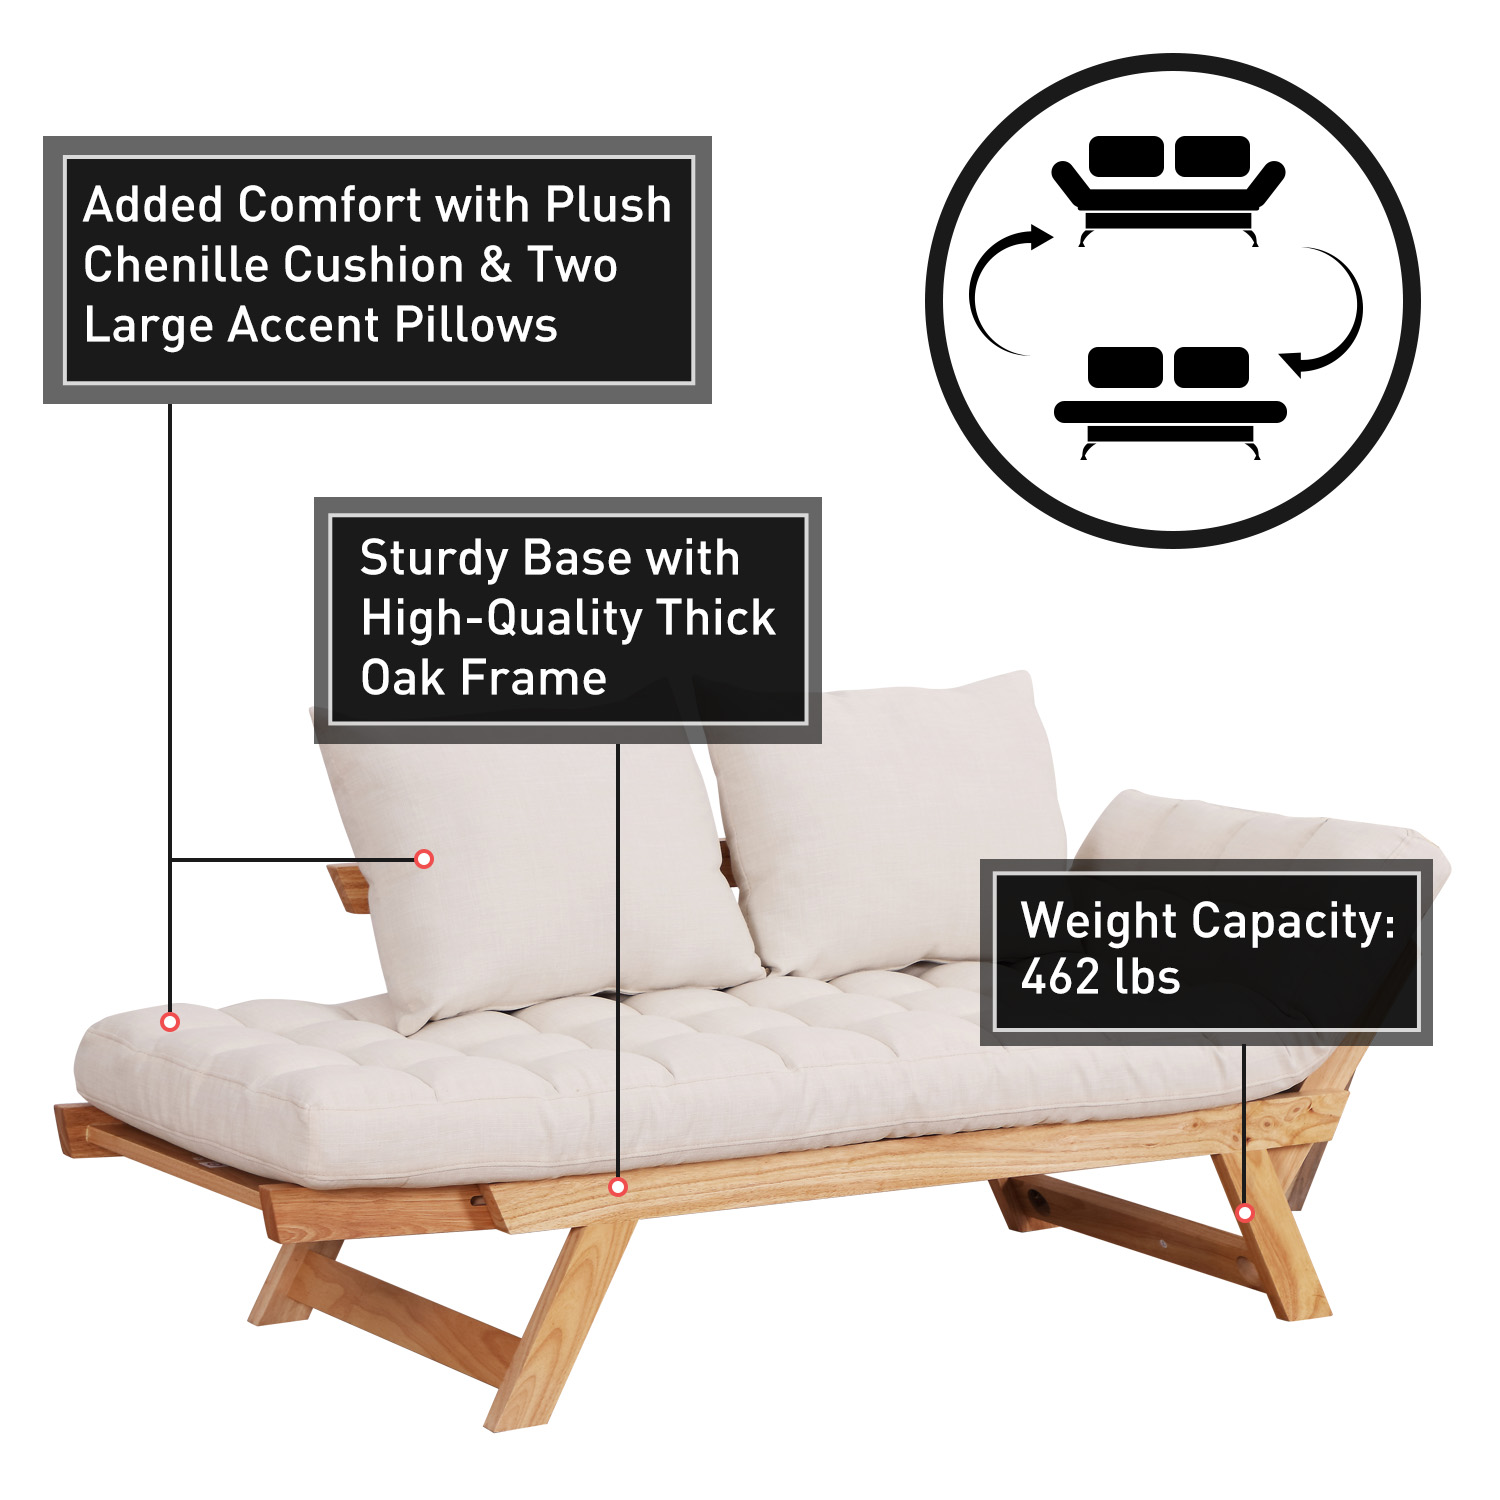 Convertible-Sofa-Bed-Sleeper-Couch-Chaise-Lounge-Chair-Adjustable-Padded-Pillow thumbnail 40